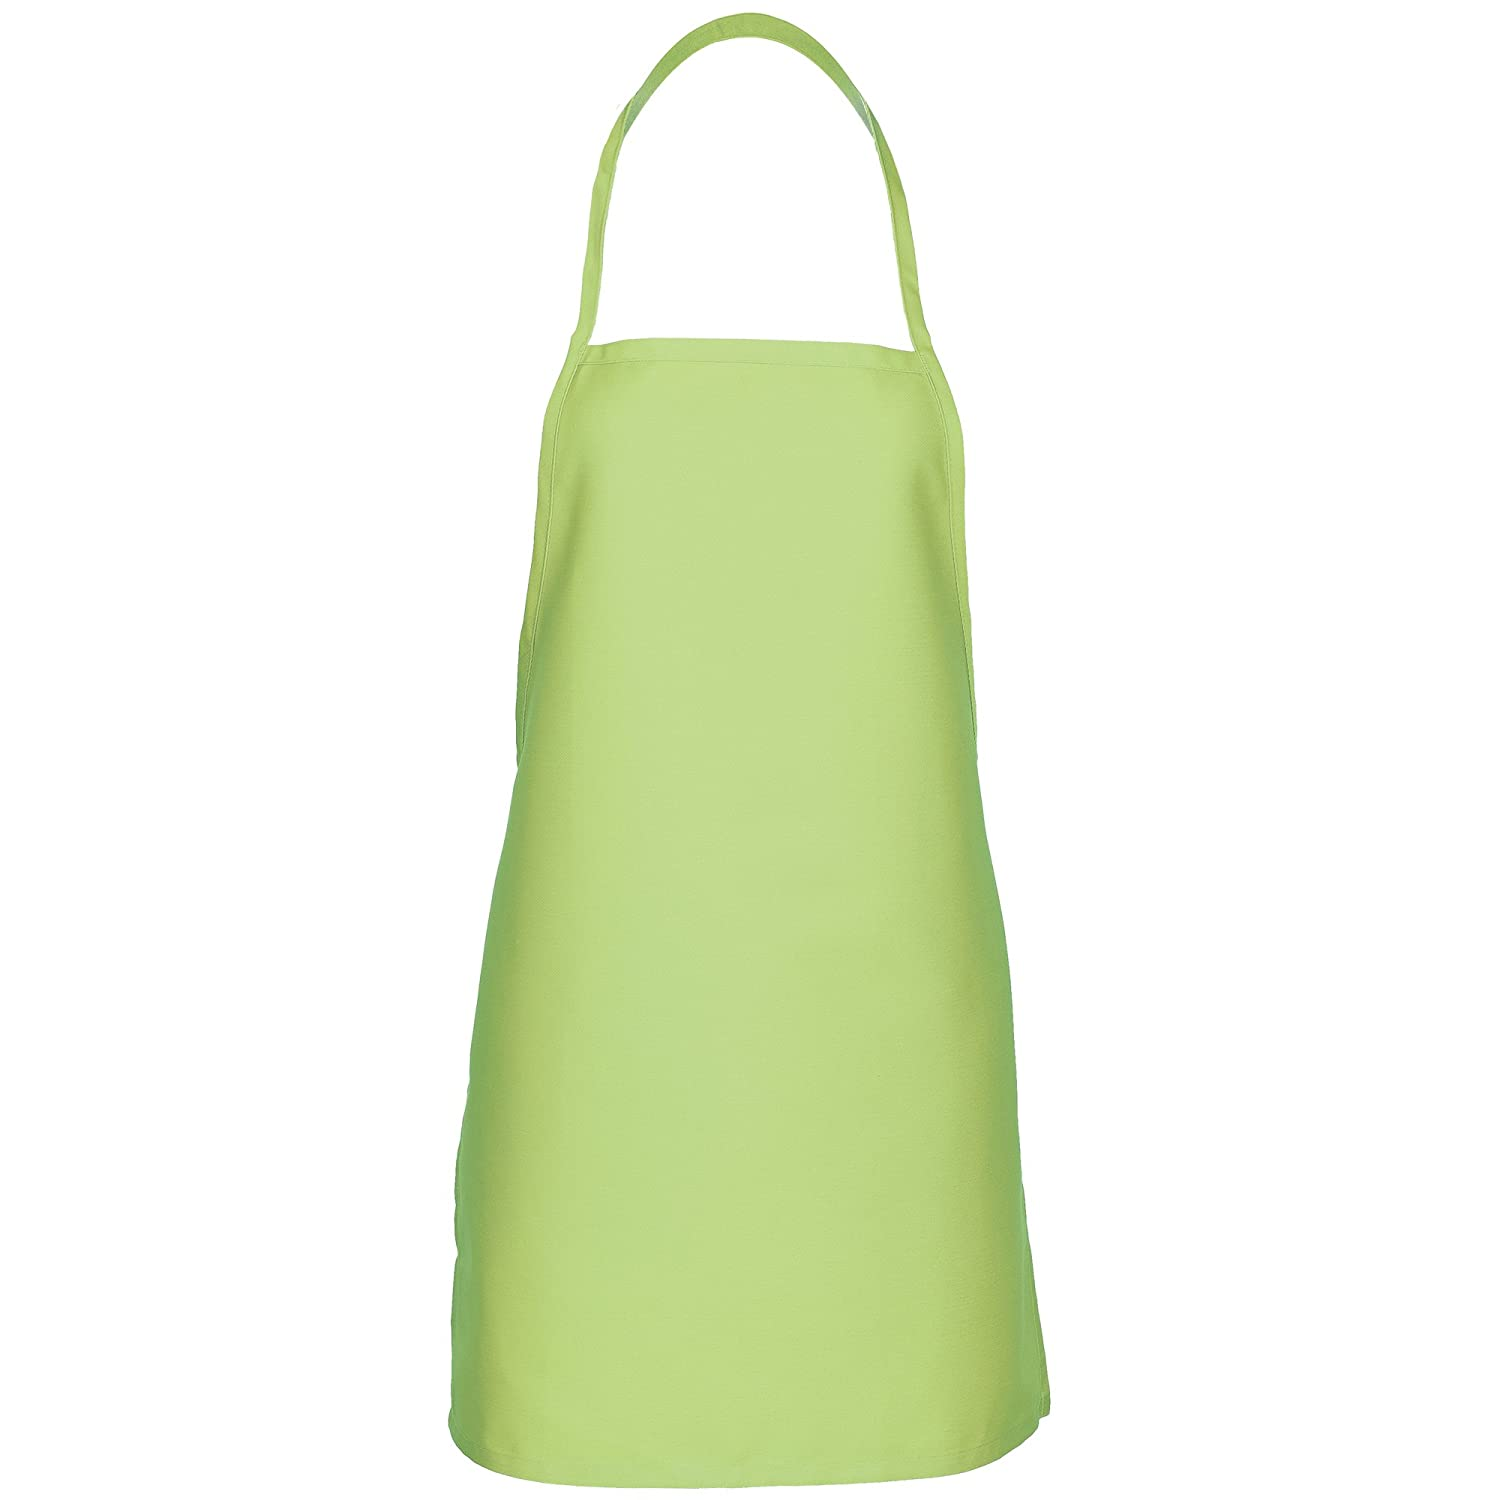 Fame Adult's Cover Up-Bib Apron 21